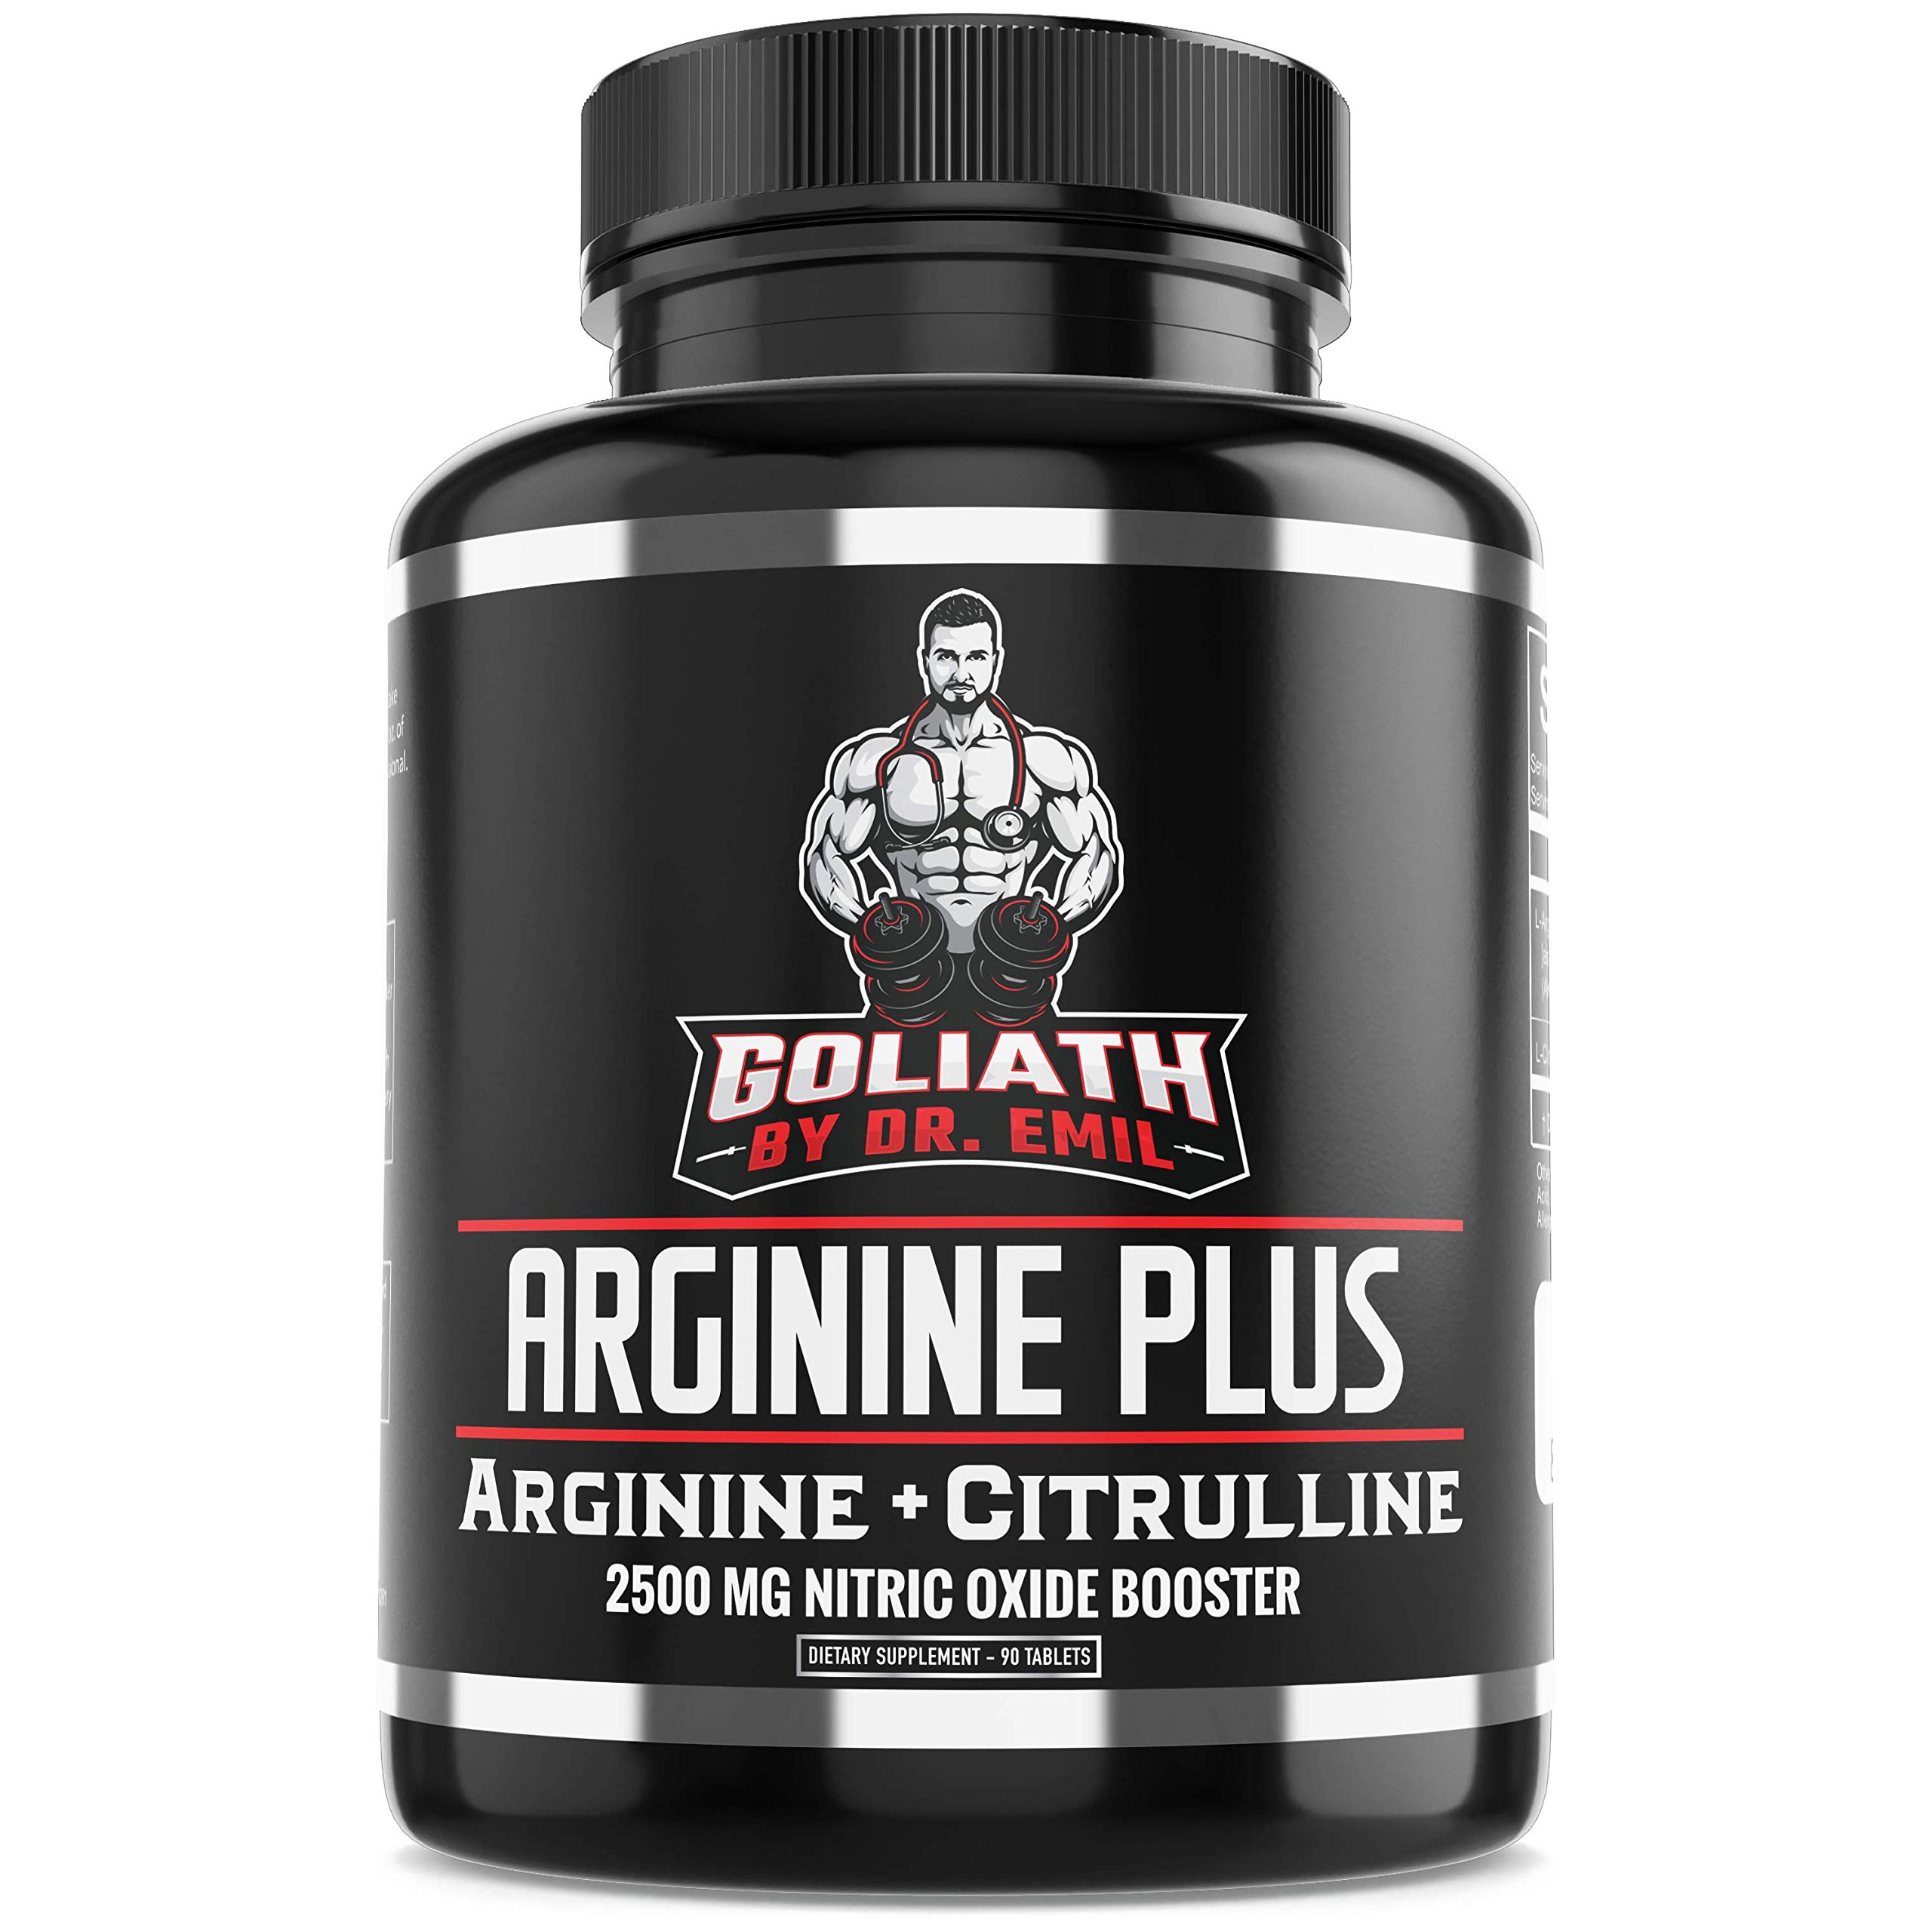 Dr. Emil's ARGININE Plus - L Arginine + L Citrulline - 2500 MG High Dose NO Booster Tablets - Nitric Oxide Supplement for Muscle, Pump and Heart Health (Arginine AAKG and Citrulline Malate 2:1) by DR EMIL NUTRITION